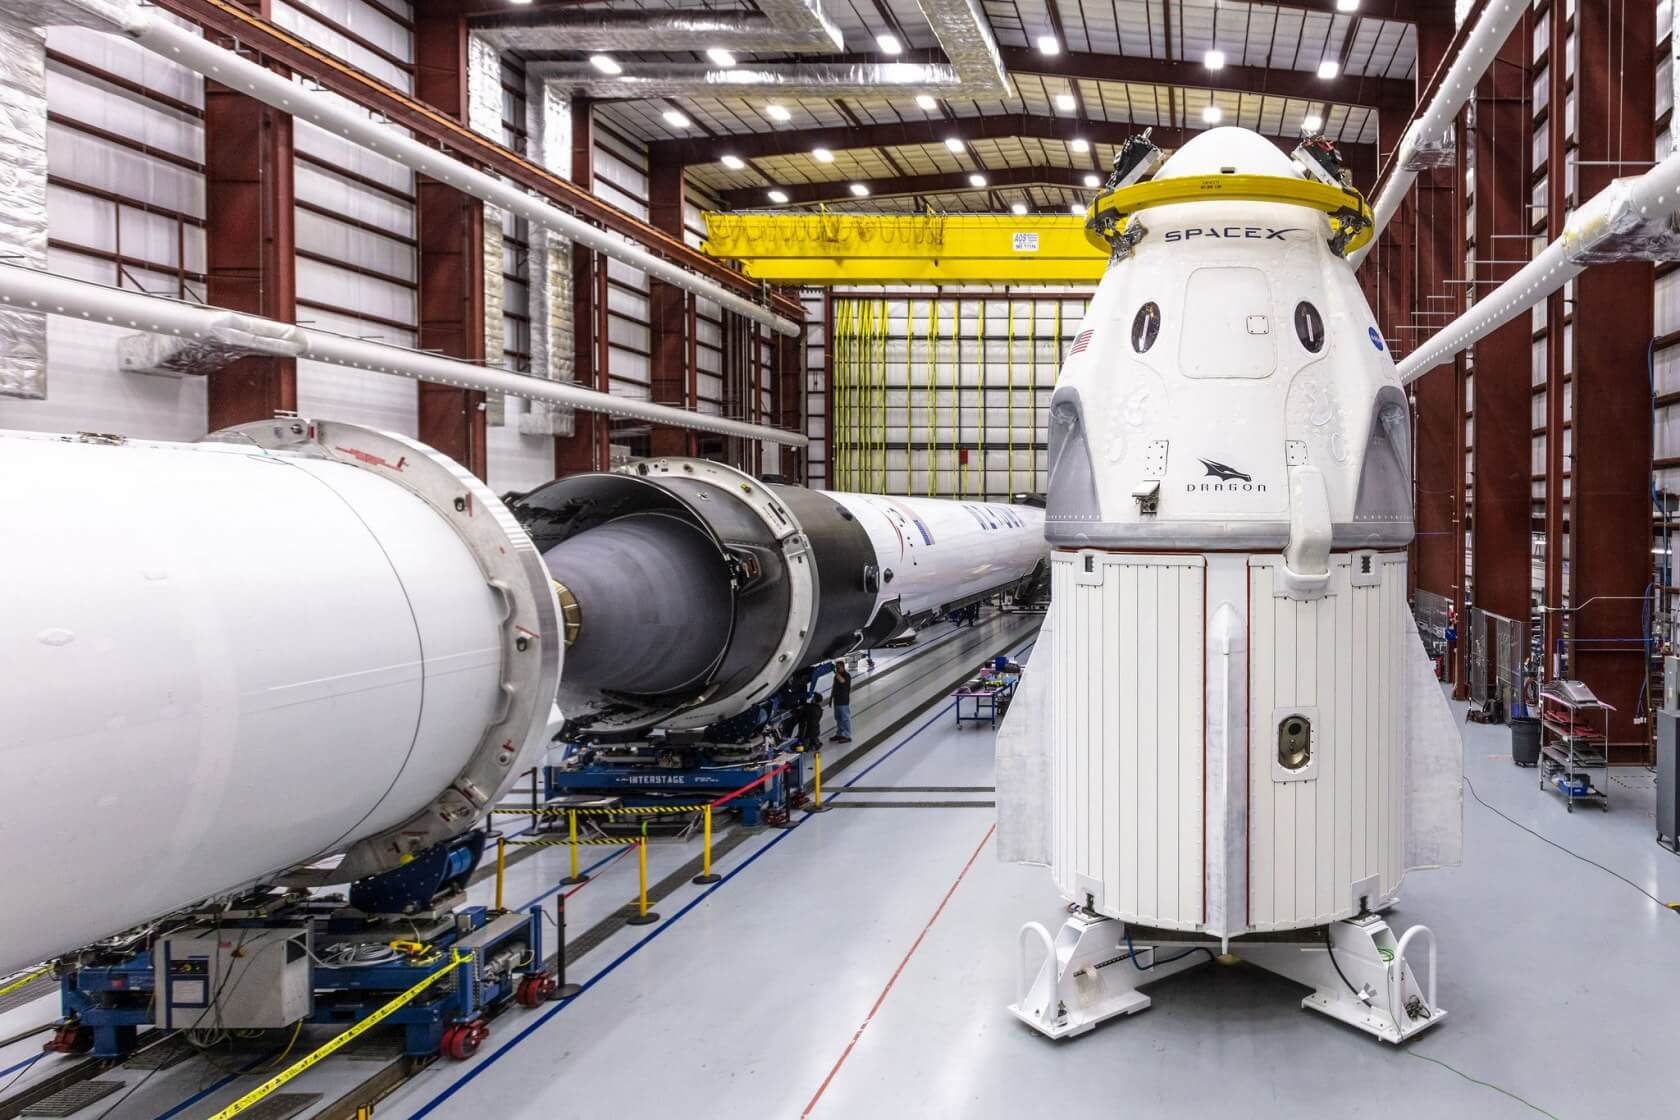 NASA Workers Banned From Sharing Images After SpaceX Capsule Explosion Leak